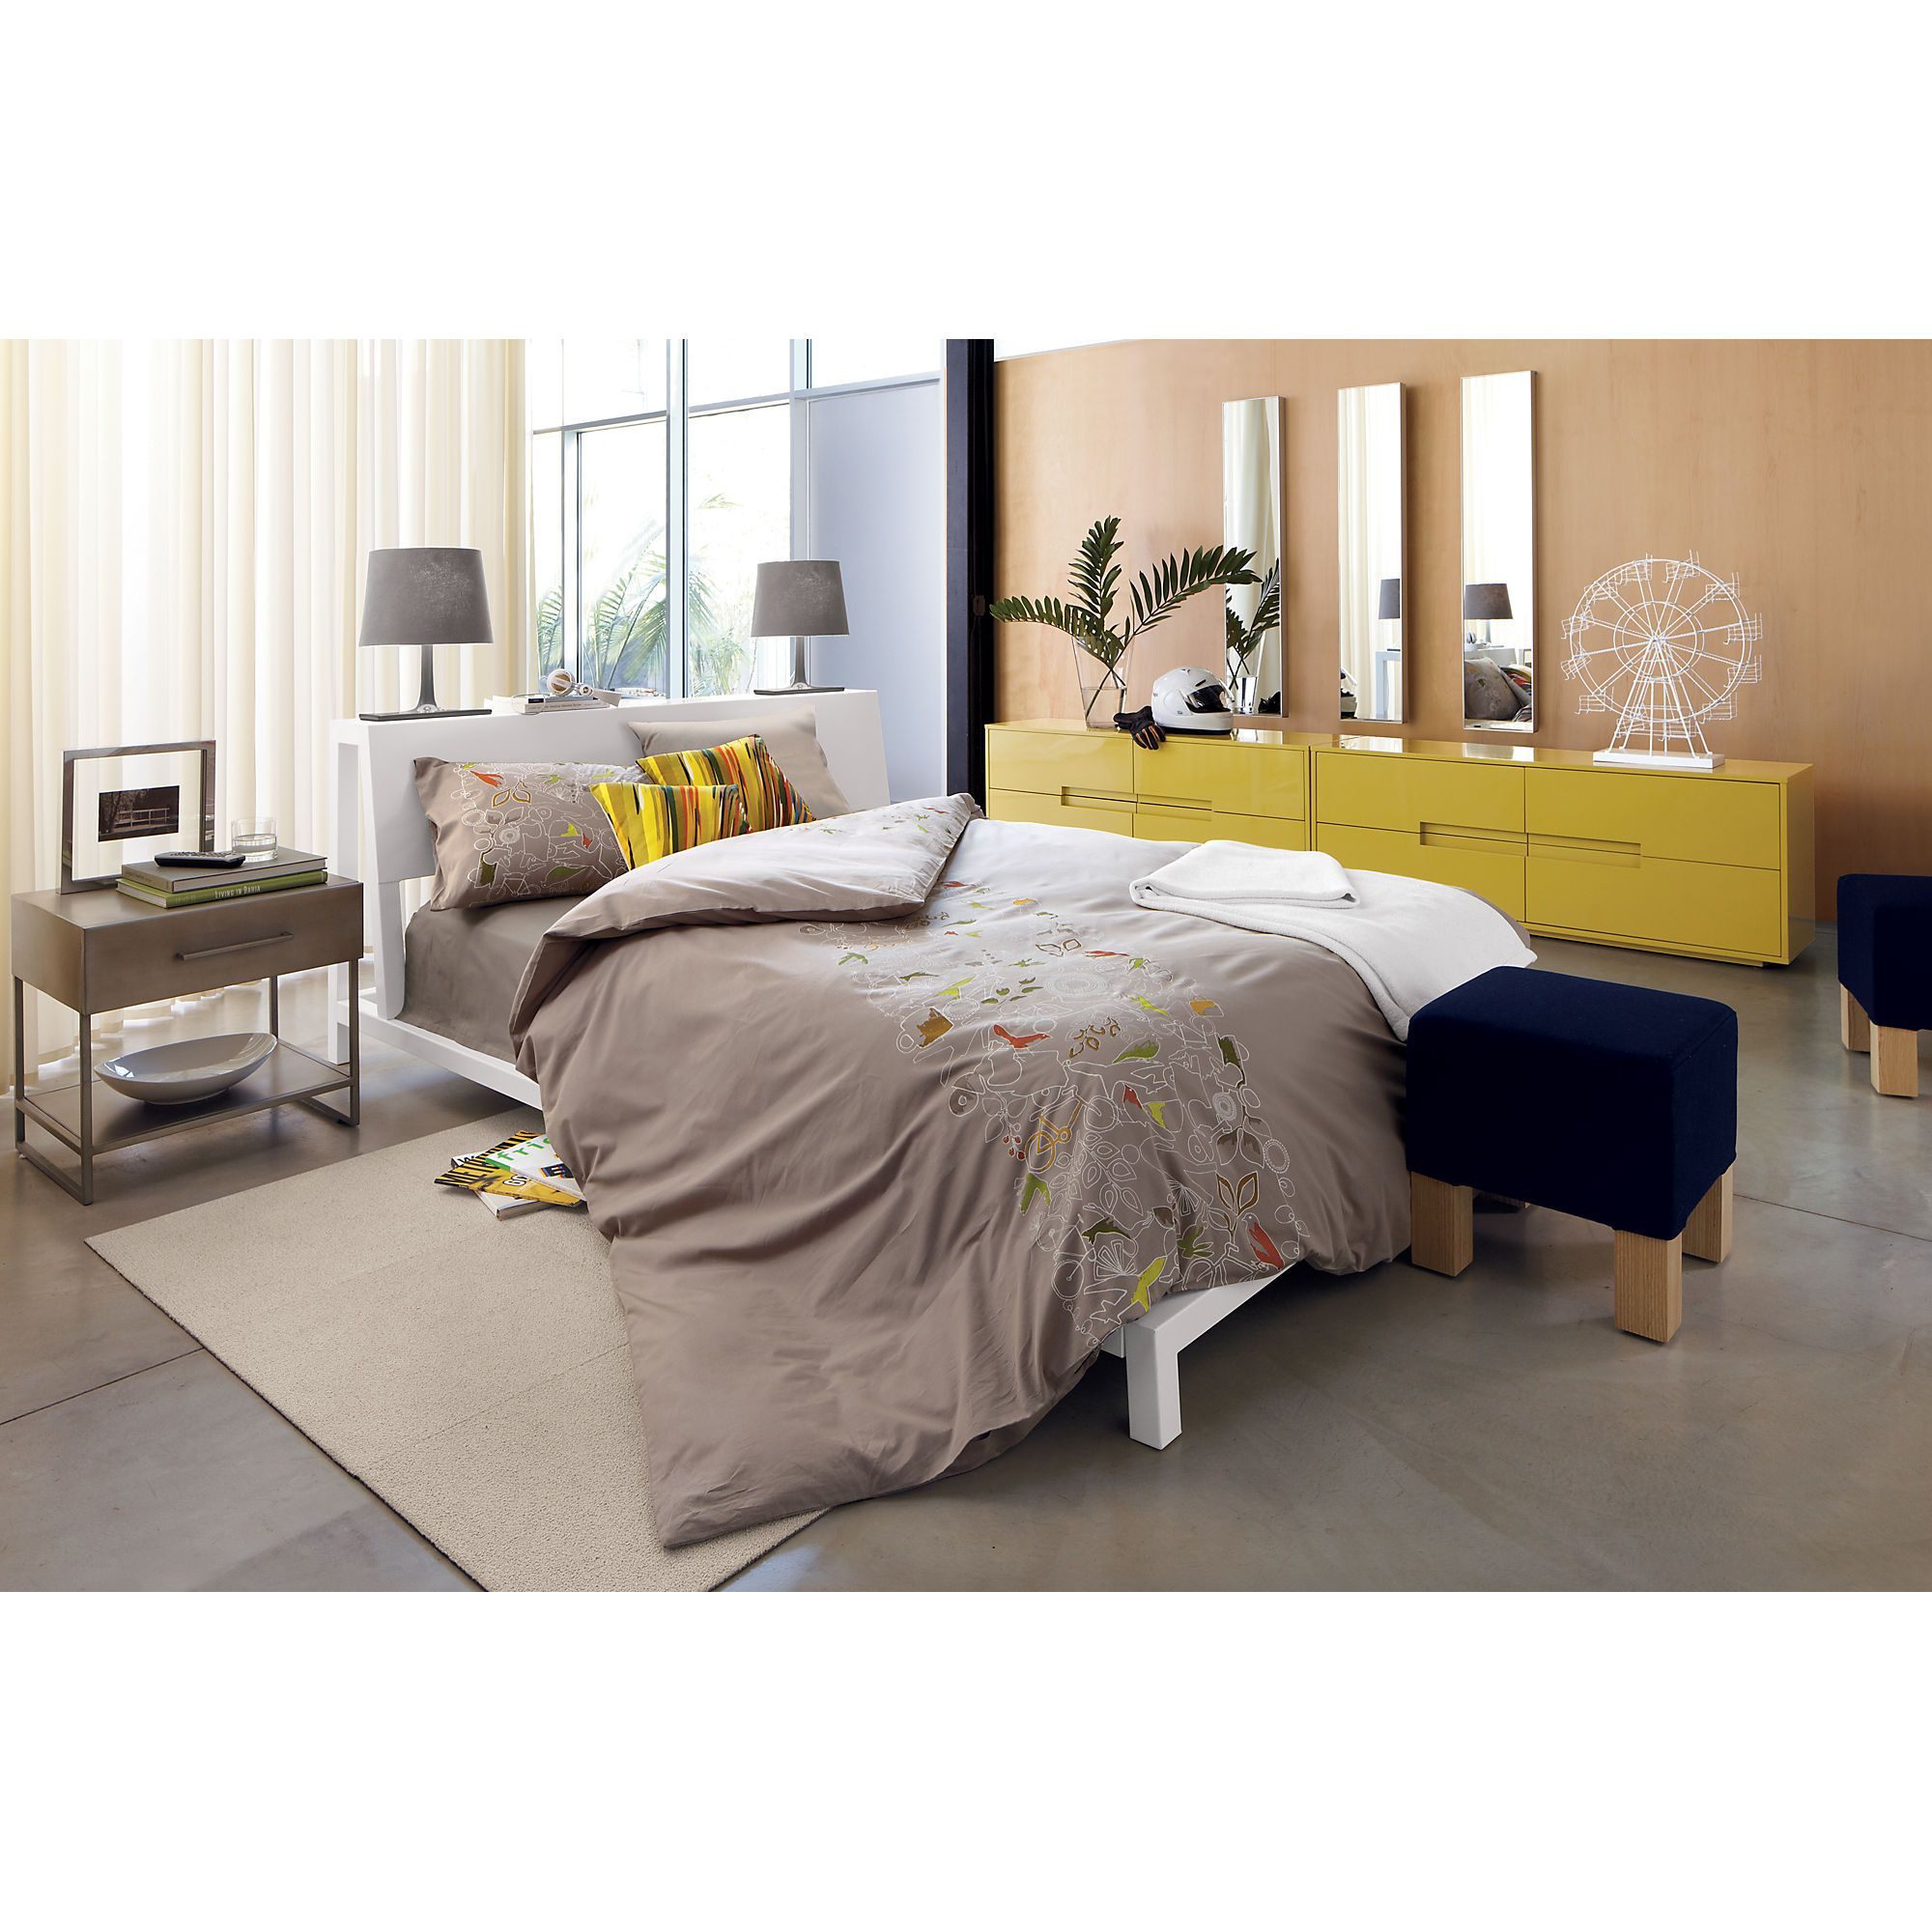 Best Latitude Grellow Low Dresser In Bedroom Furniture Cb2 640 x 480